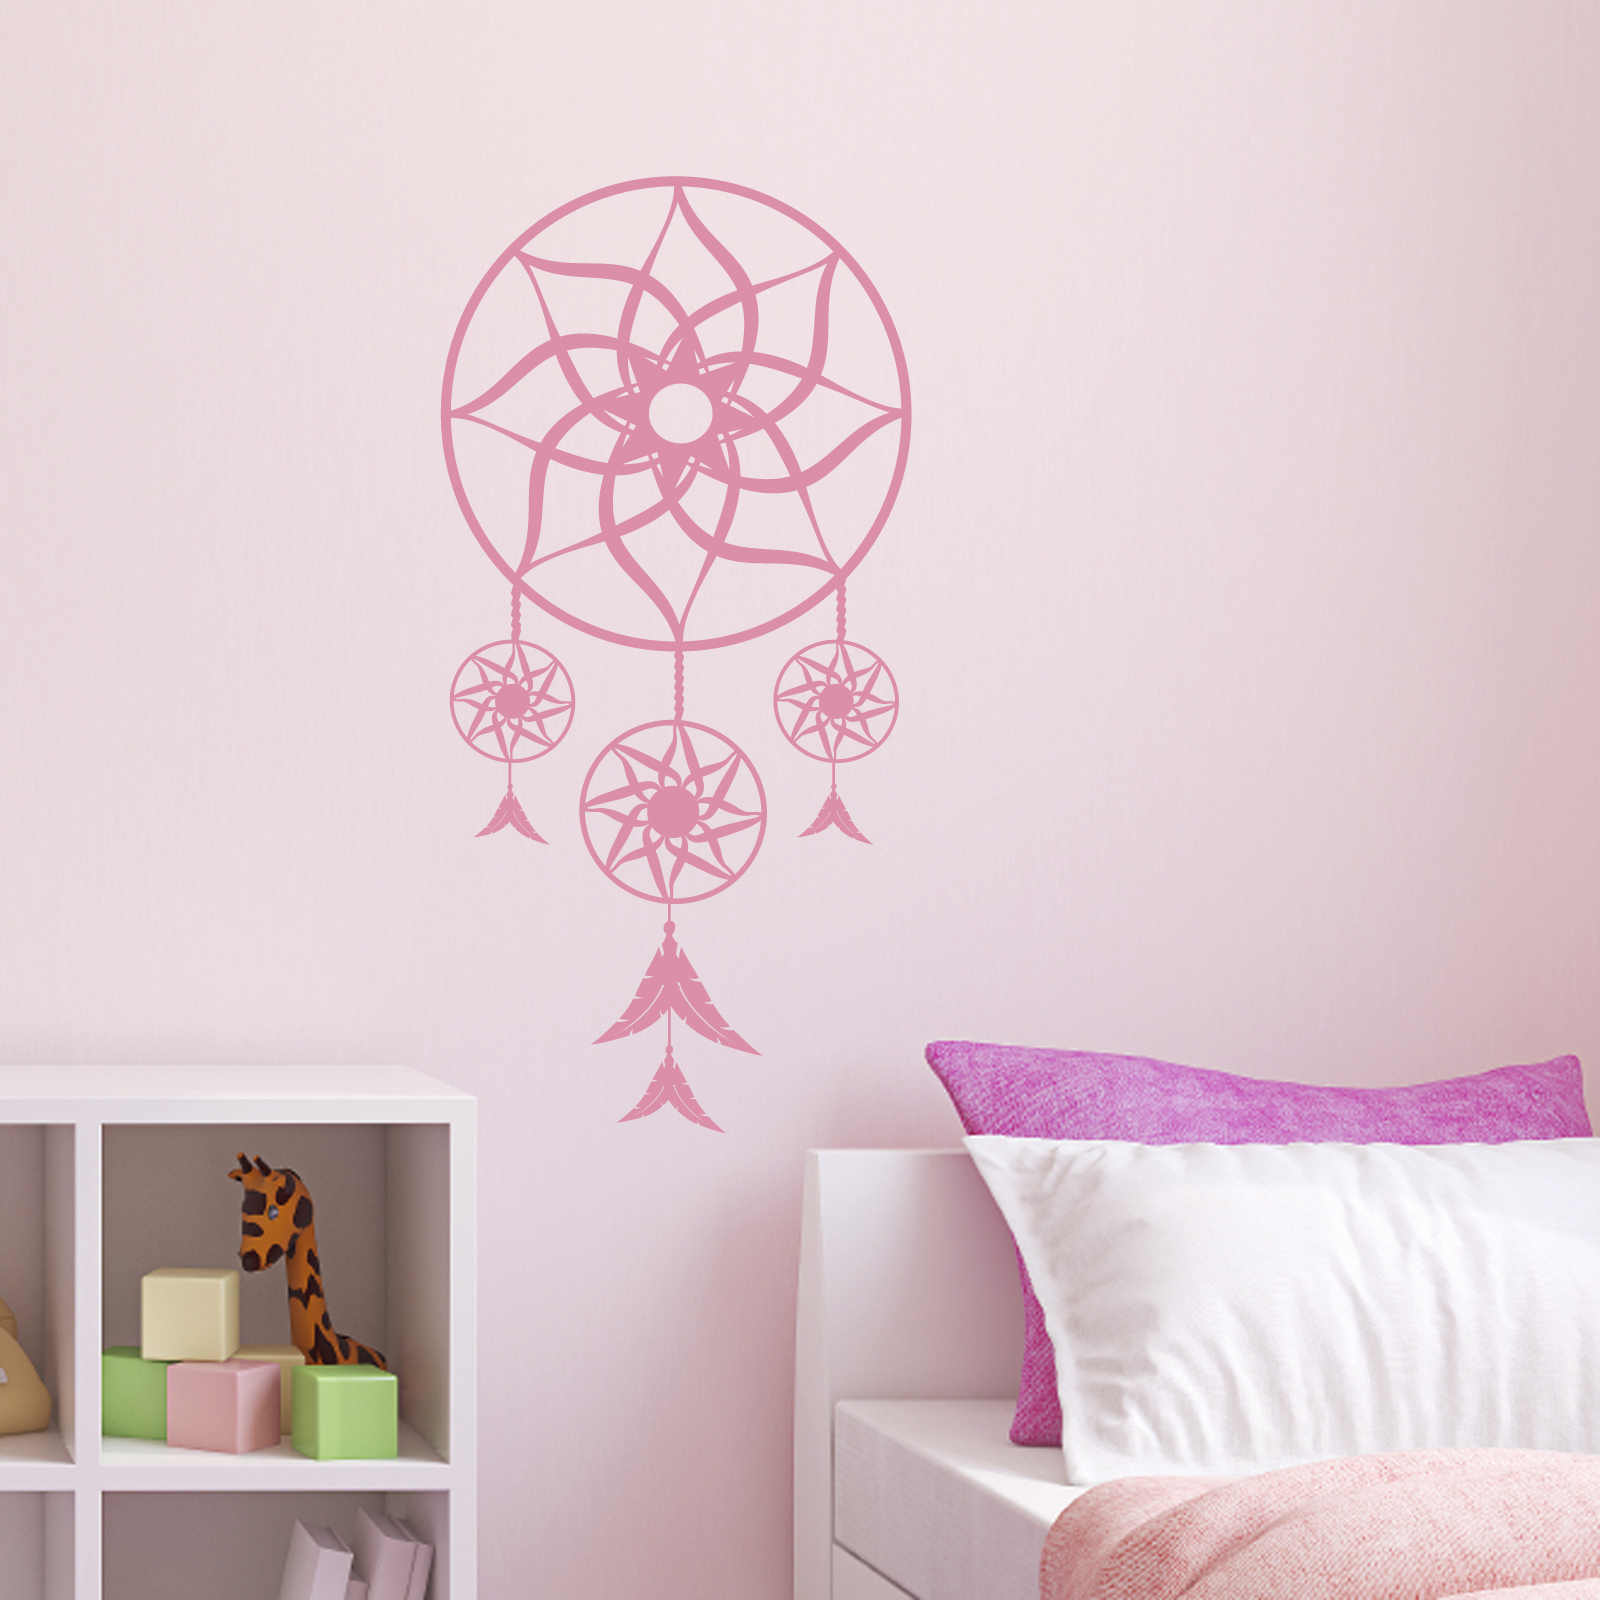 Sticker Dinding Jual Wall Sticker Sticker Dinding Wall Decal Stiker Vynil